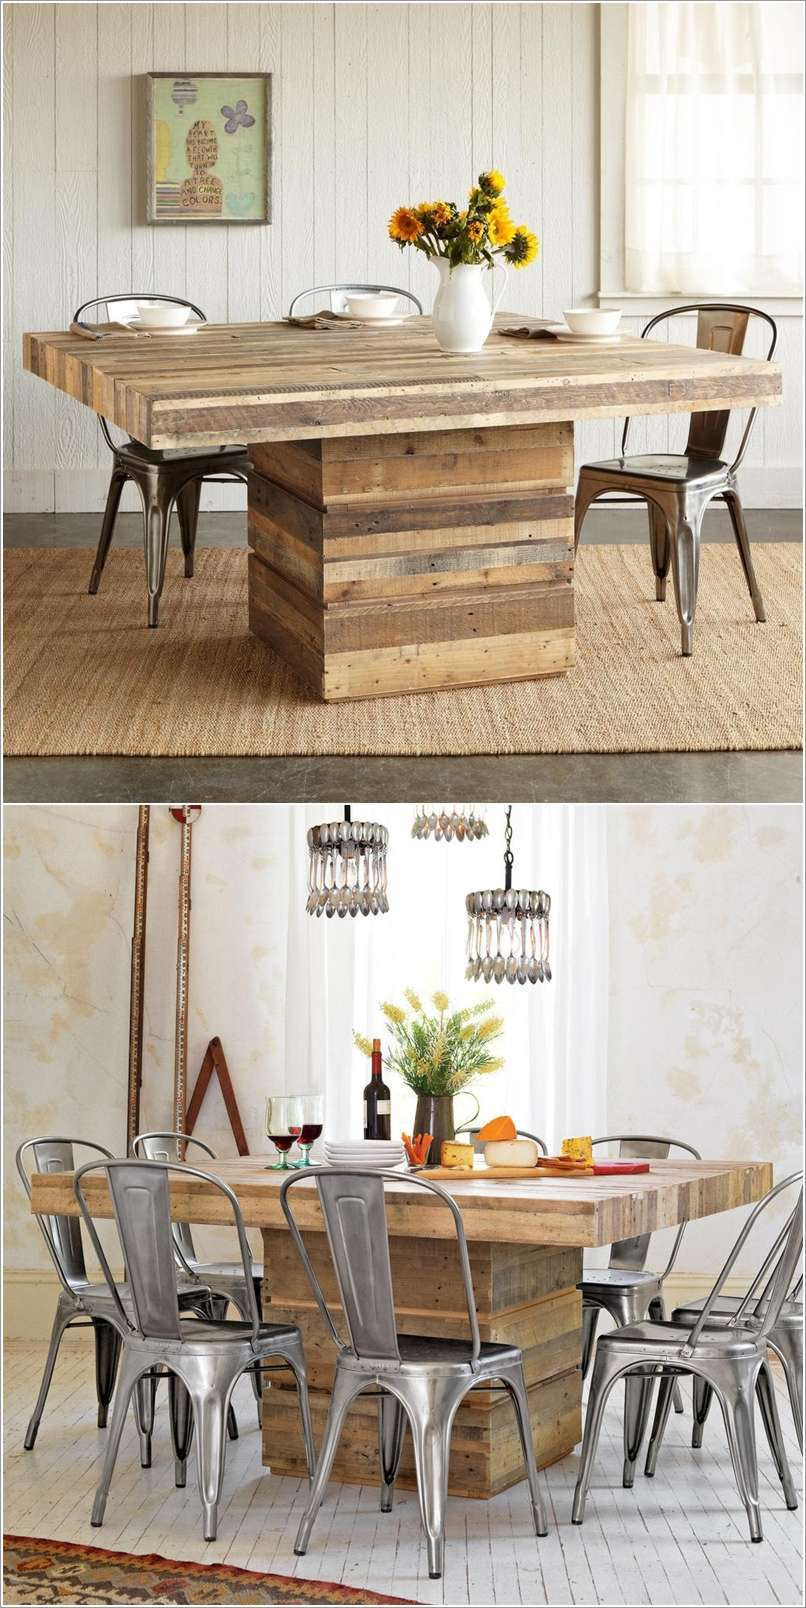 10 spectacular diy dining table ideas for your home - Fabriquer une table a manger en palette ...